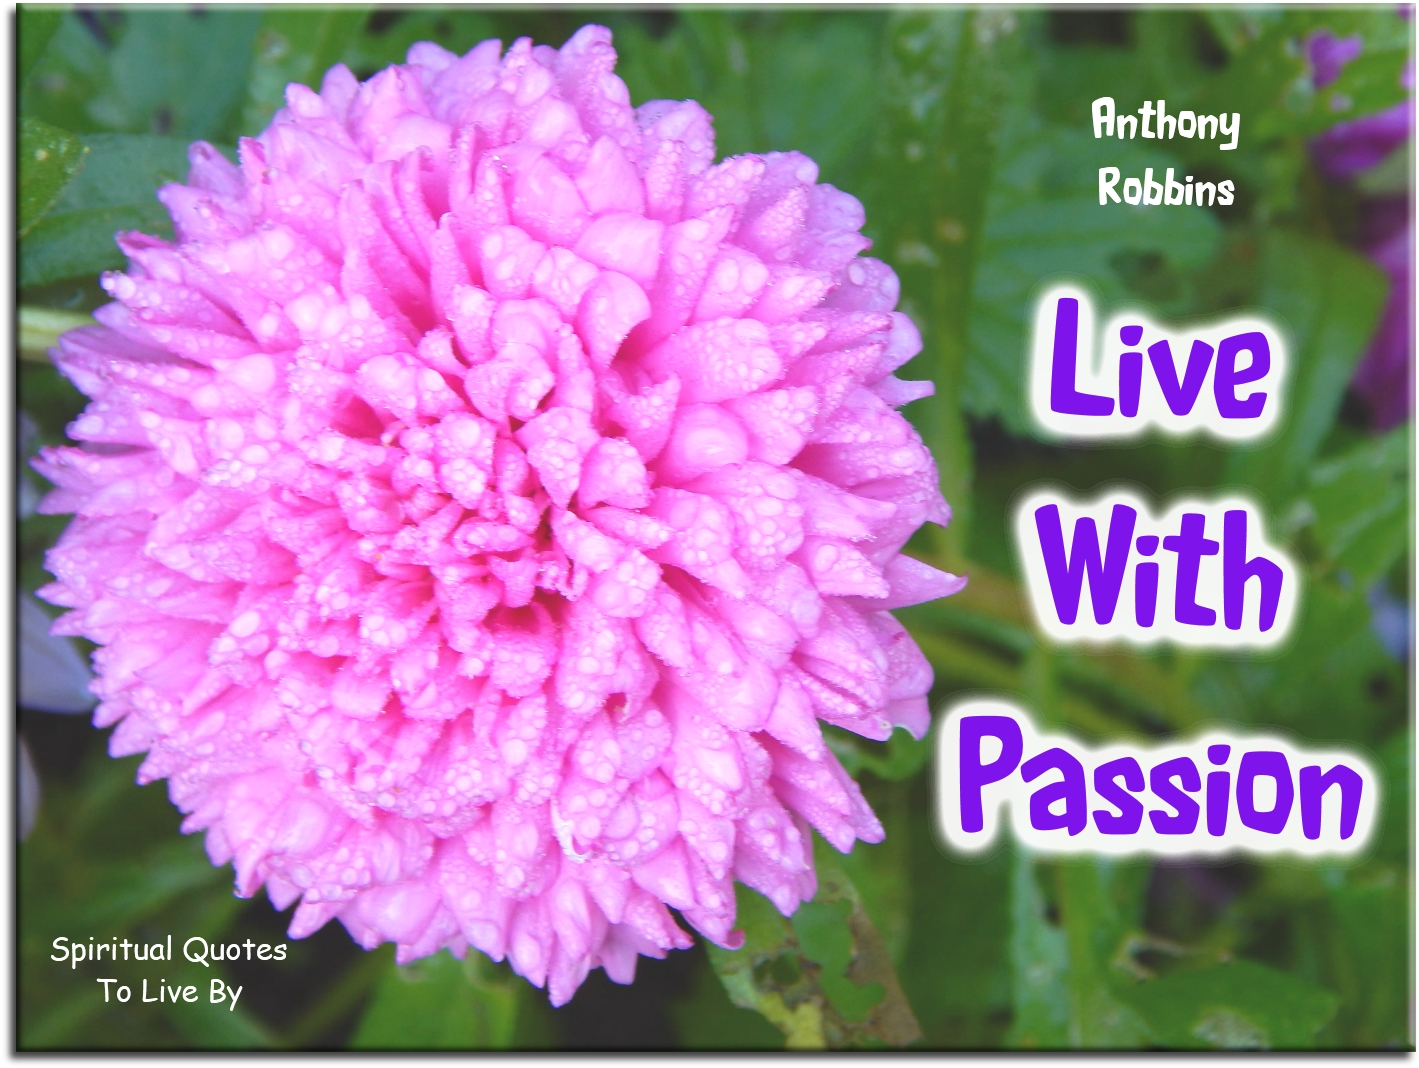 Live with passion - Anthony Robbins - Spiritual Quotes To Live By